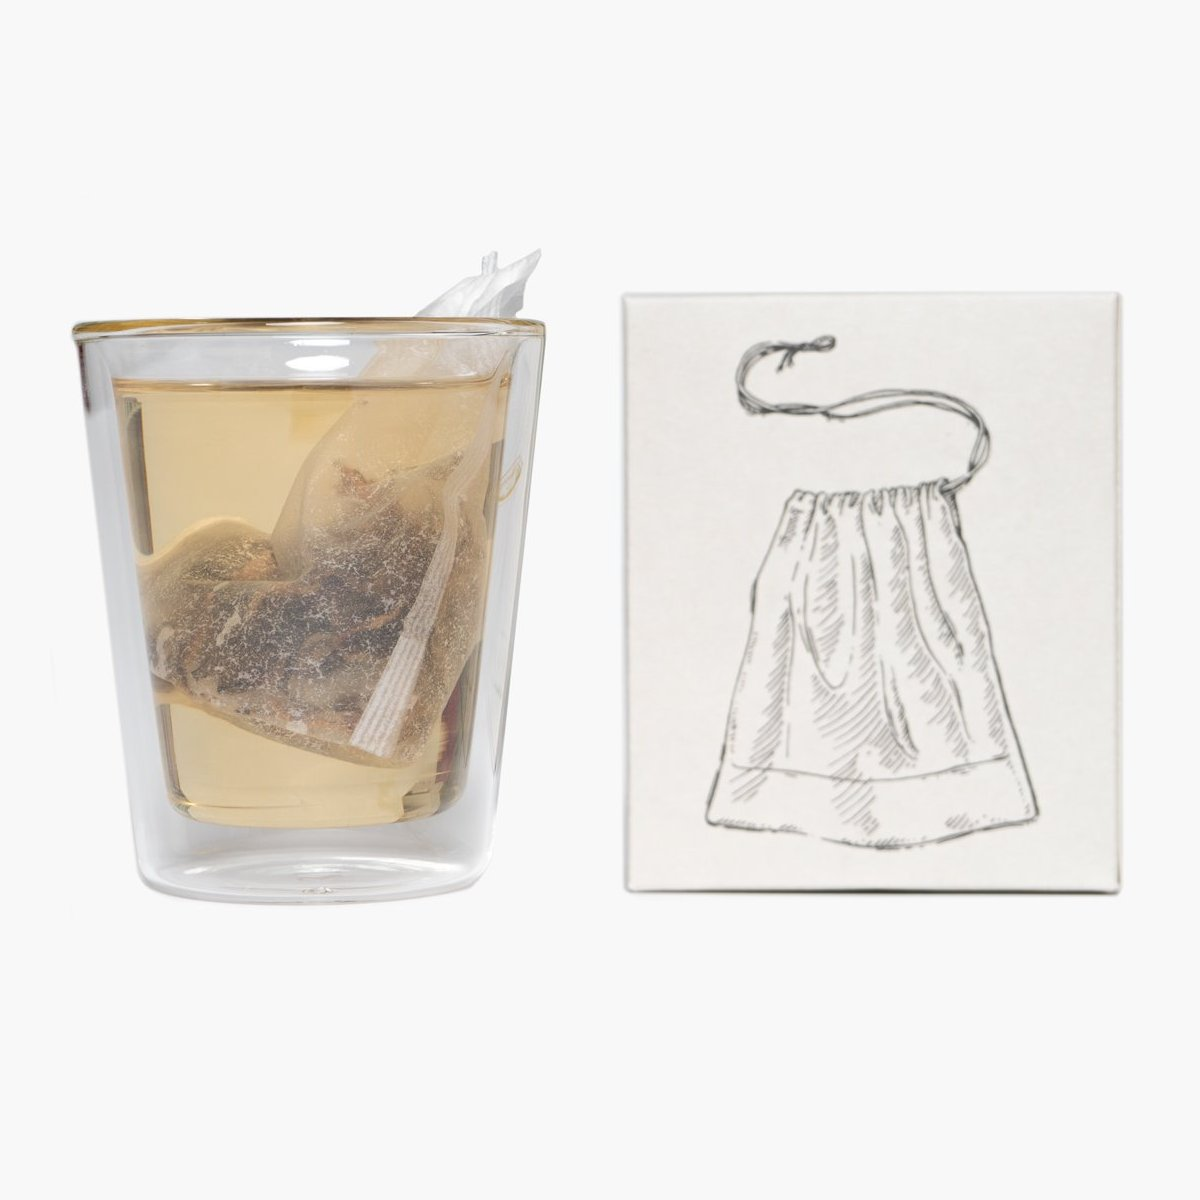 Satchel tea filters - compostable, unbleached